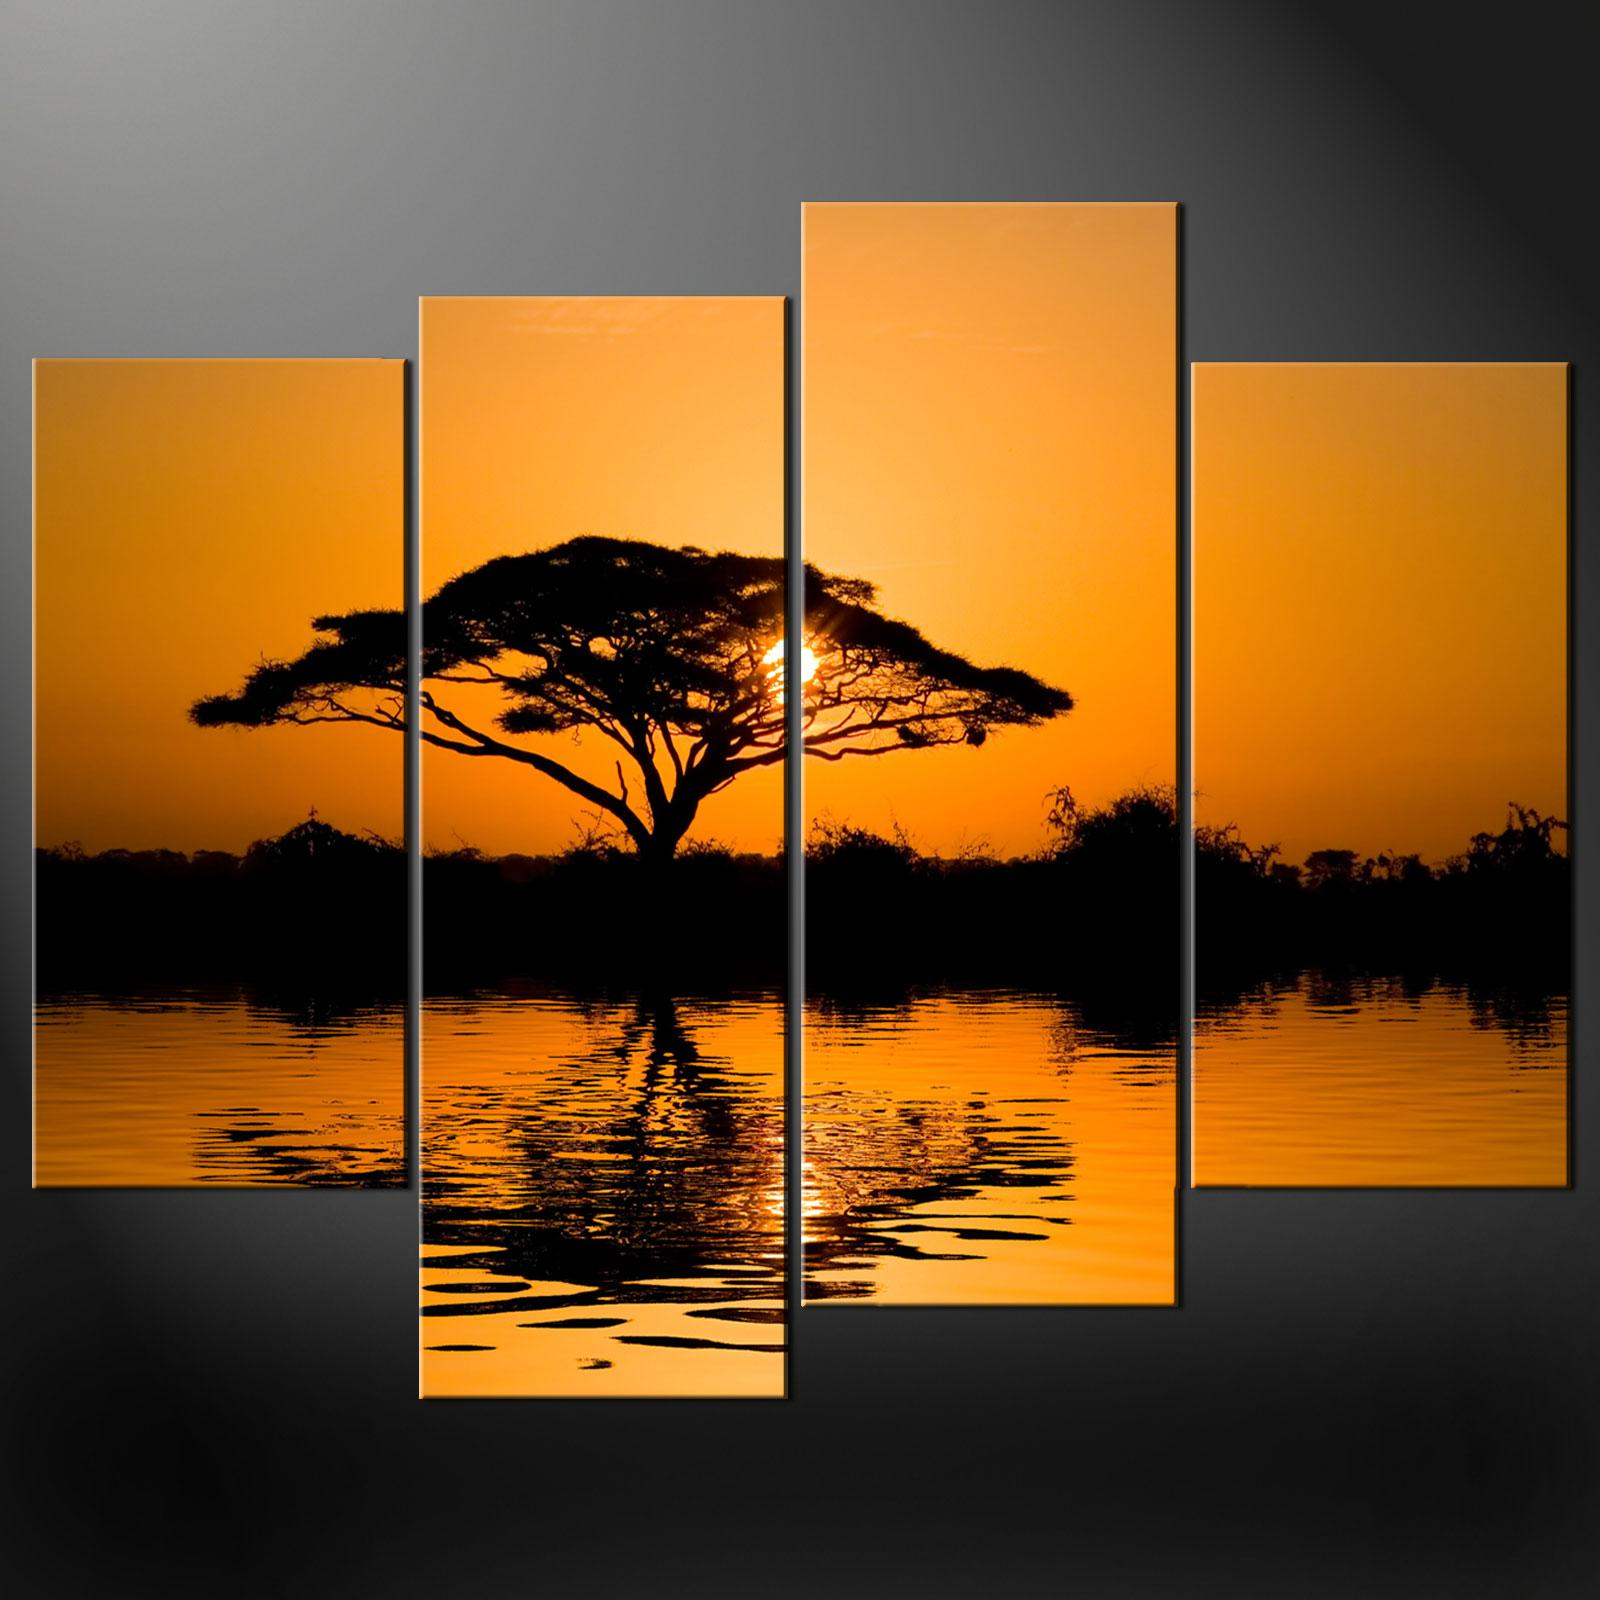 Framed 4 Panel Large African Wall Art Decor Modern Sunset Oil Painting  Beach Picture Home Decor XD01886 African Wall Art Decor Canvas Art Picture  Online ...